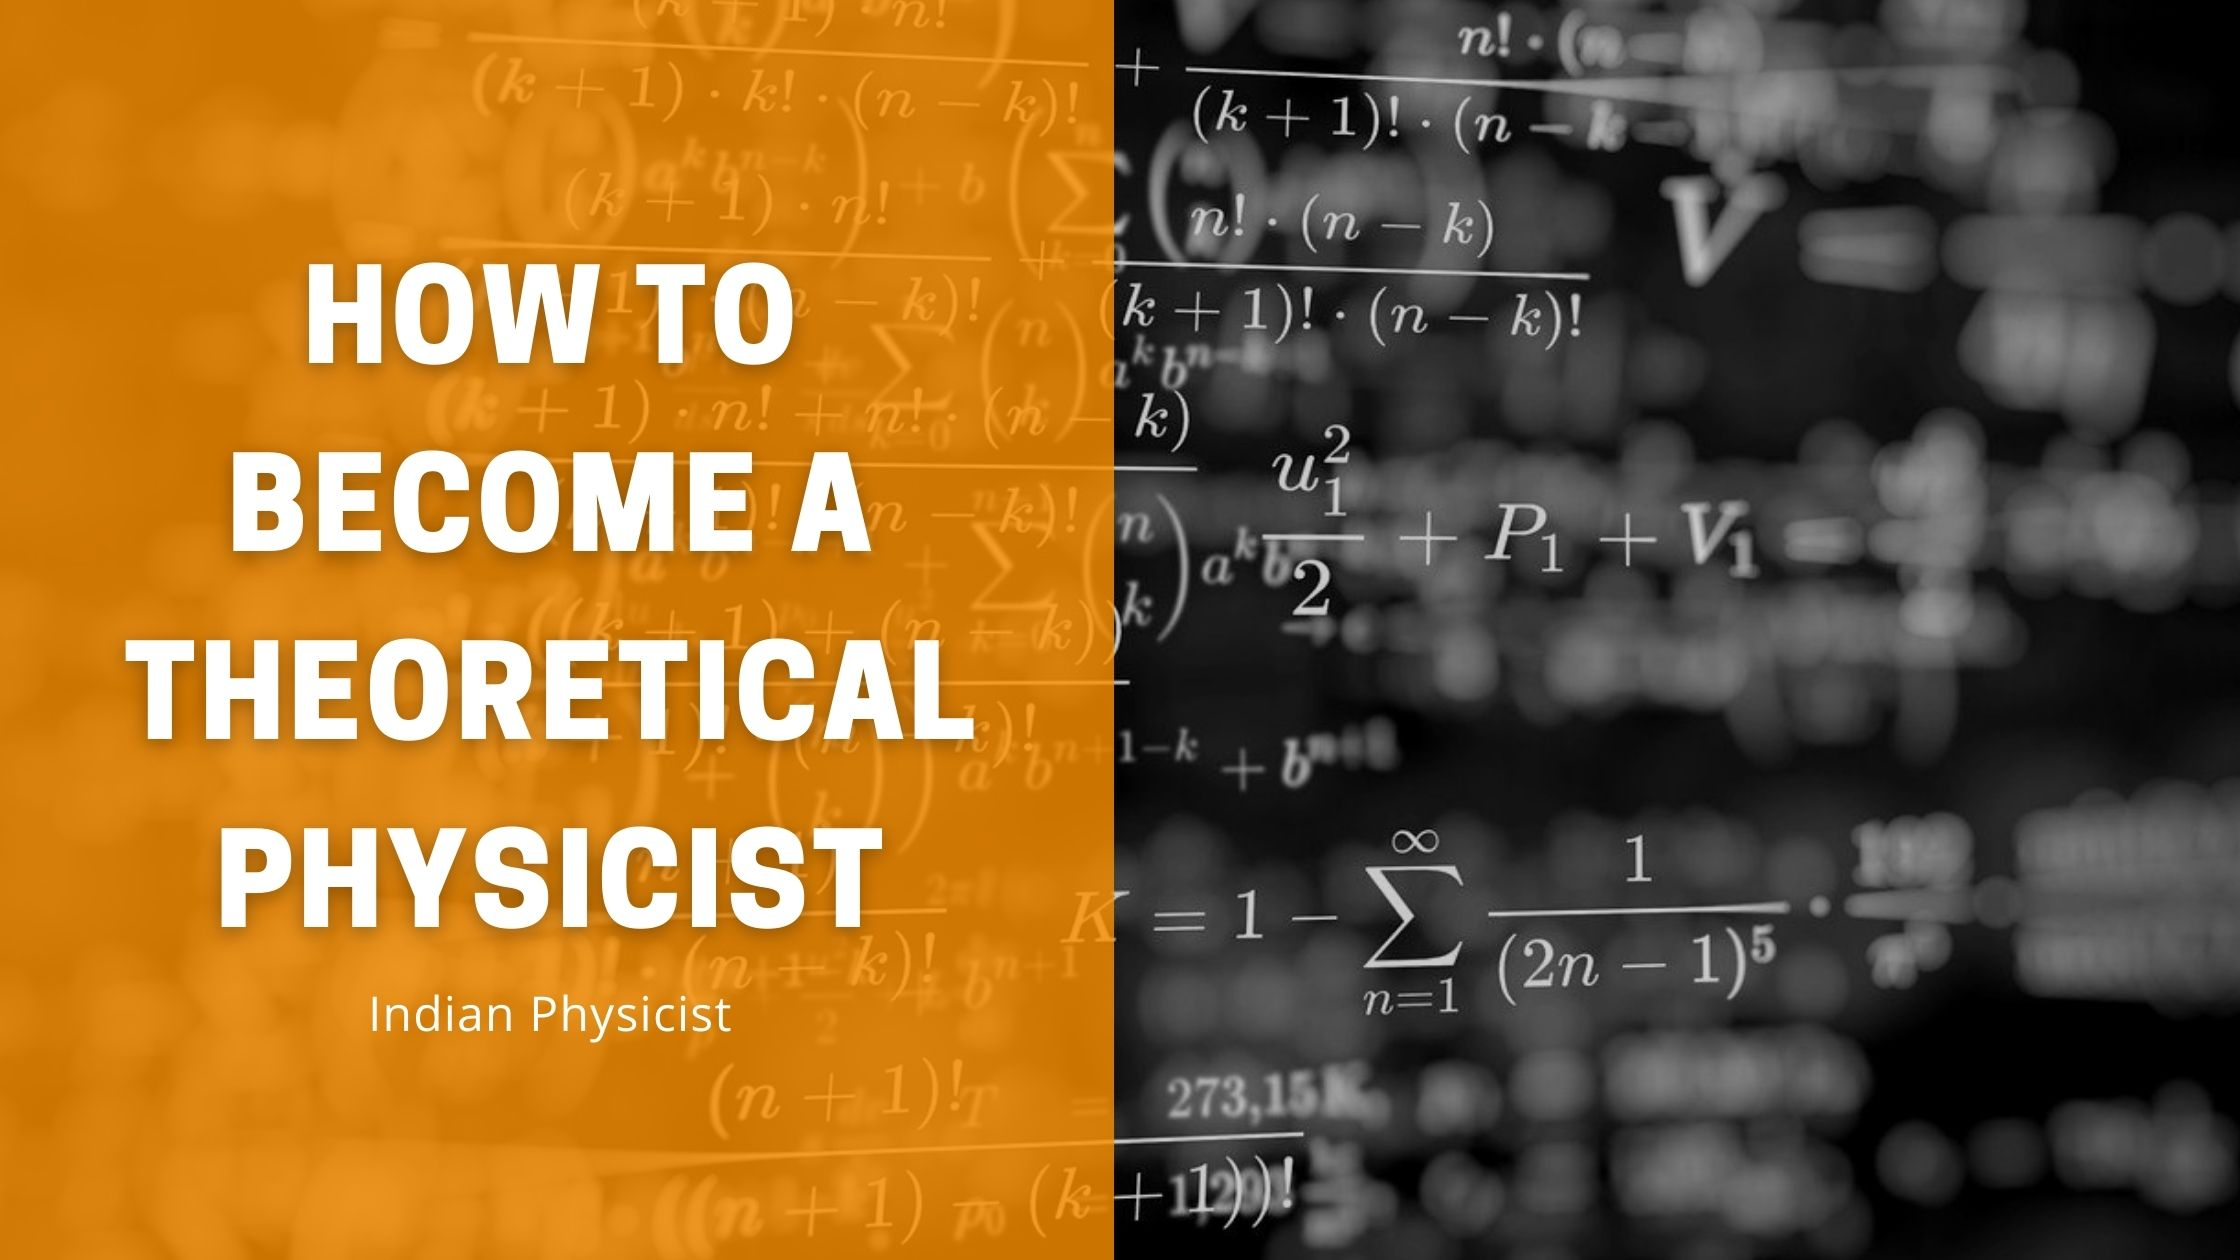 How-to-become-a-Theoretical-physicist-in-India